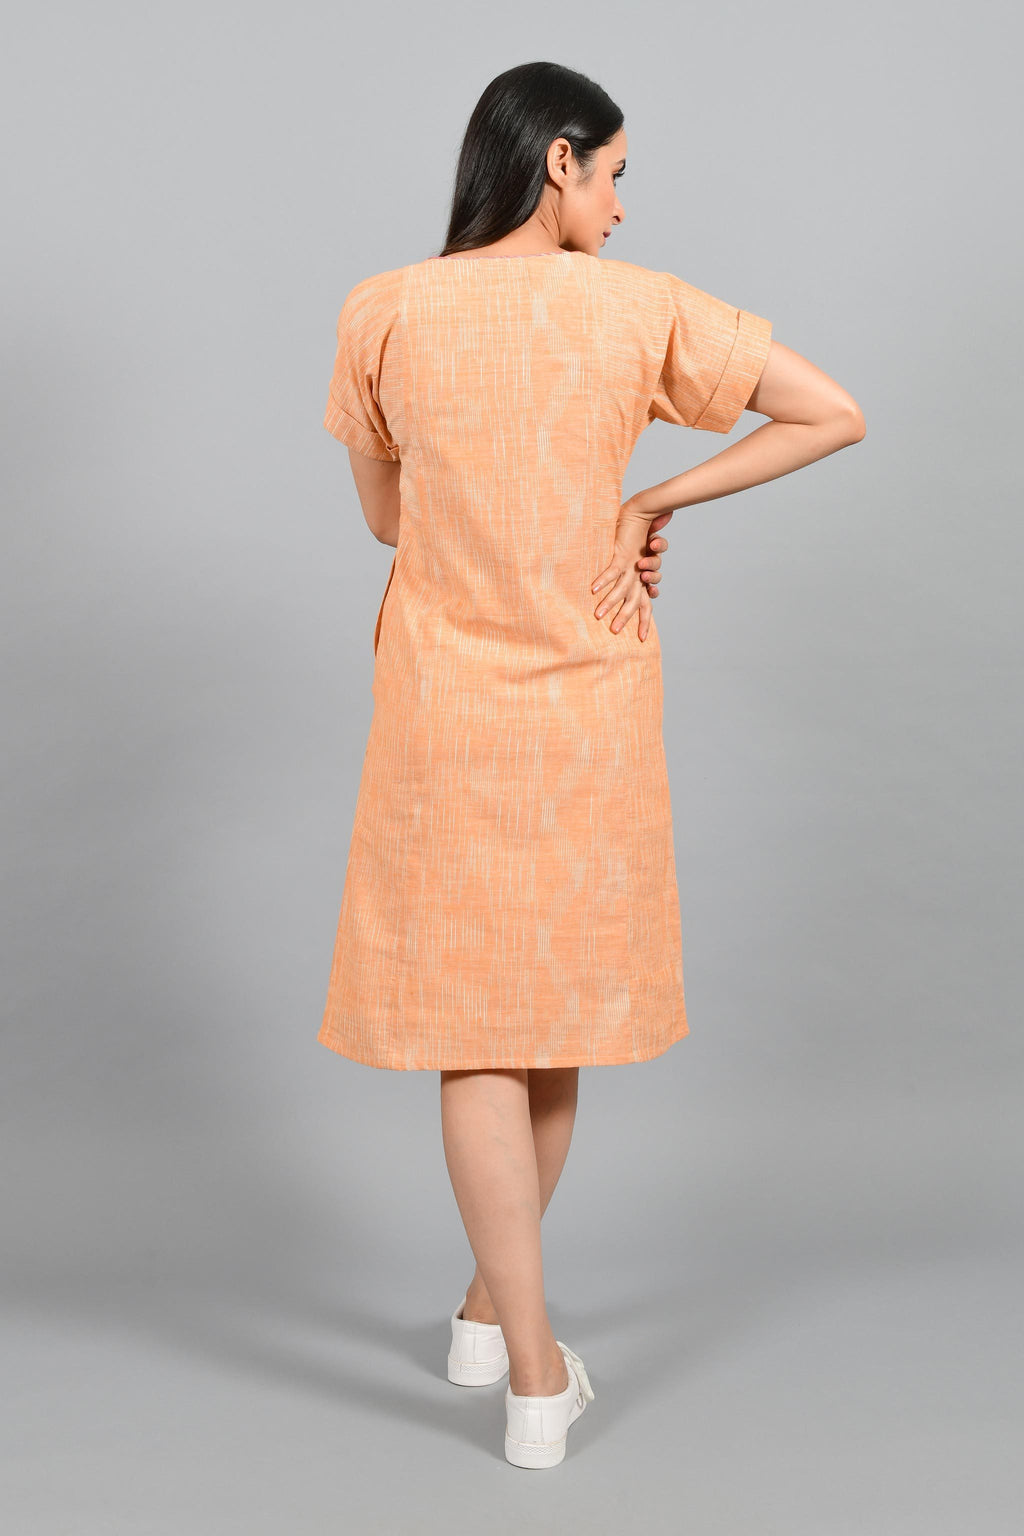 Back pose of an Indian female womenswear fashion model in an orange space dyed handspun and handwoven khadi cotton panelled dress by Cotton Rack.